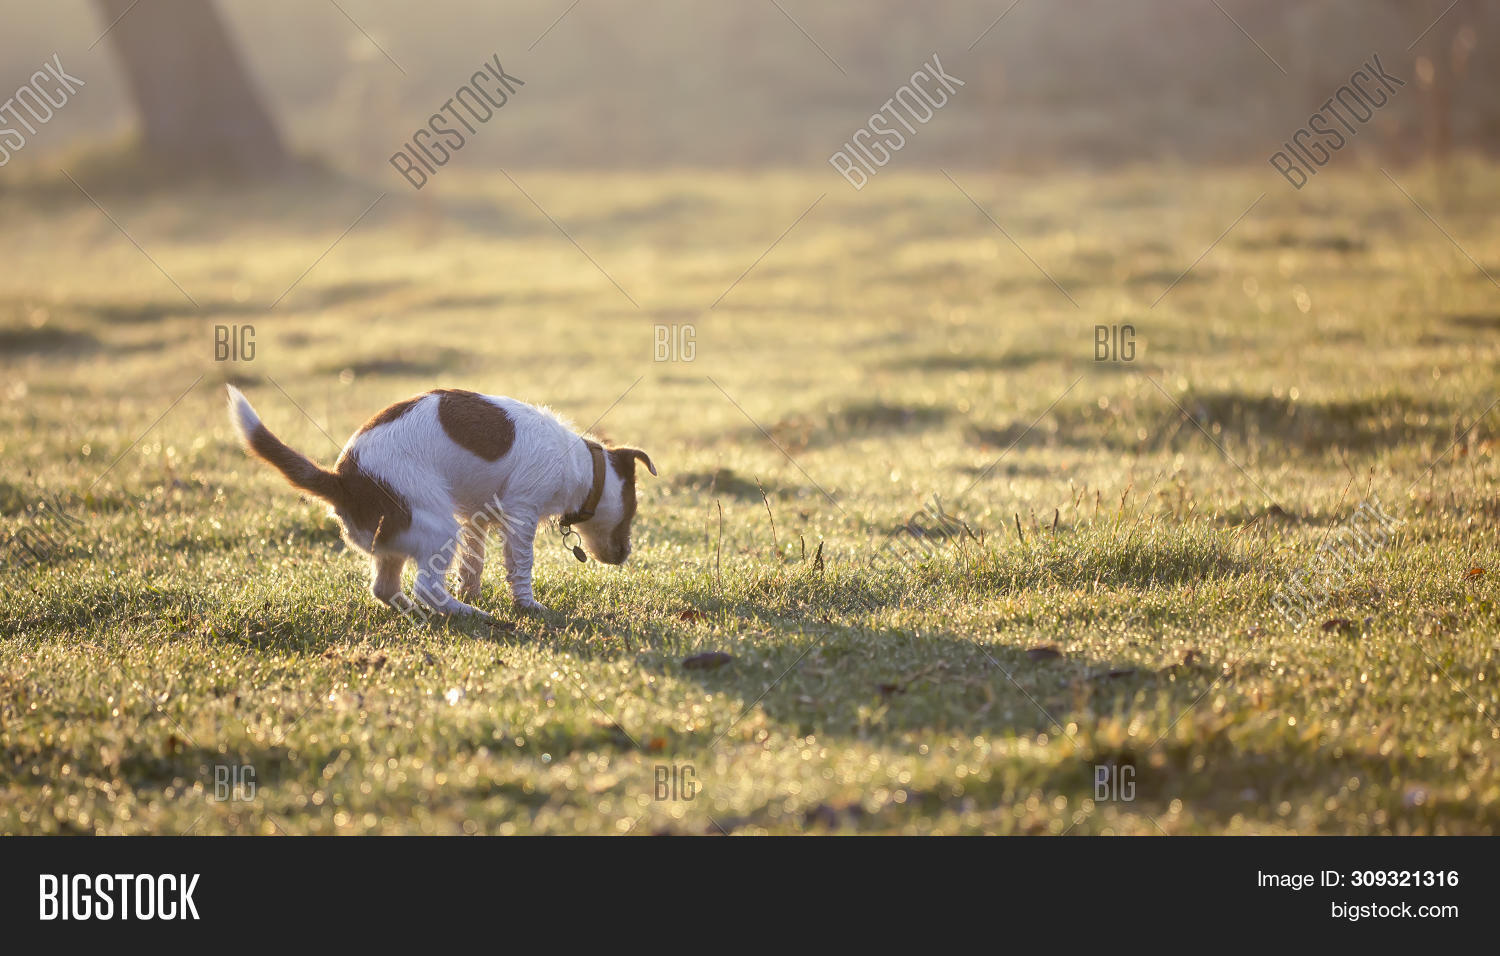 Banner Cute Dog Puppy Image Photo Free Trial Bigstock